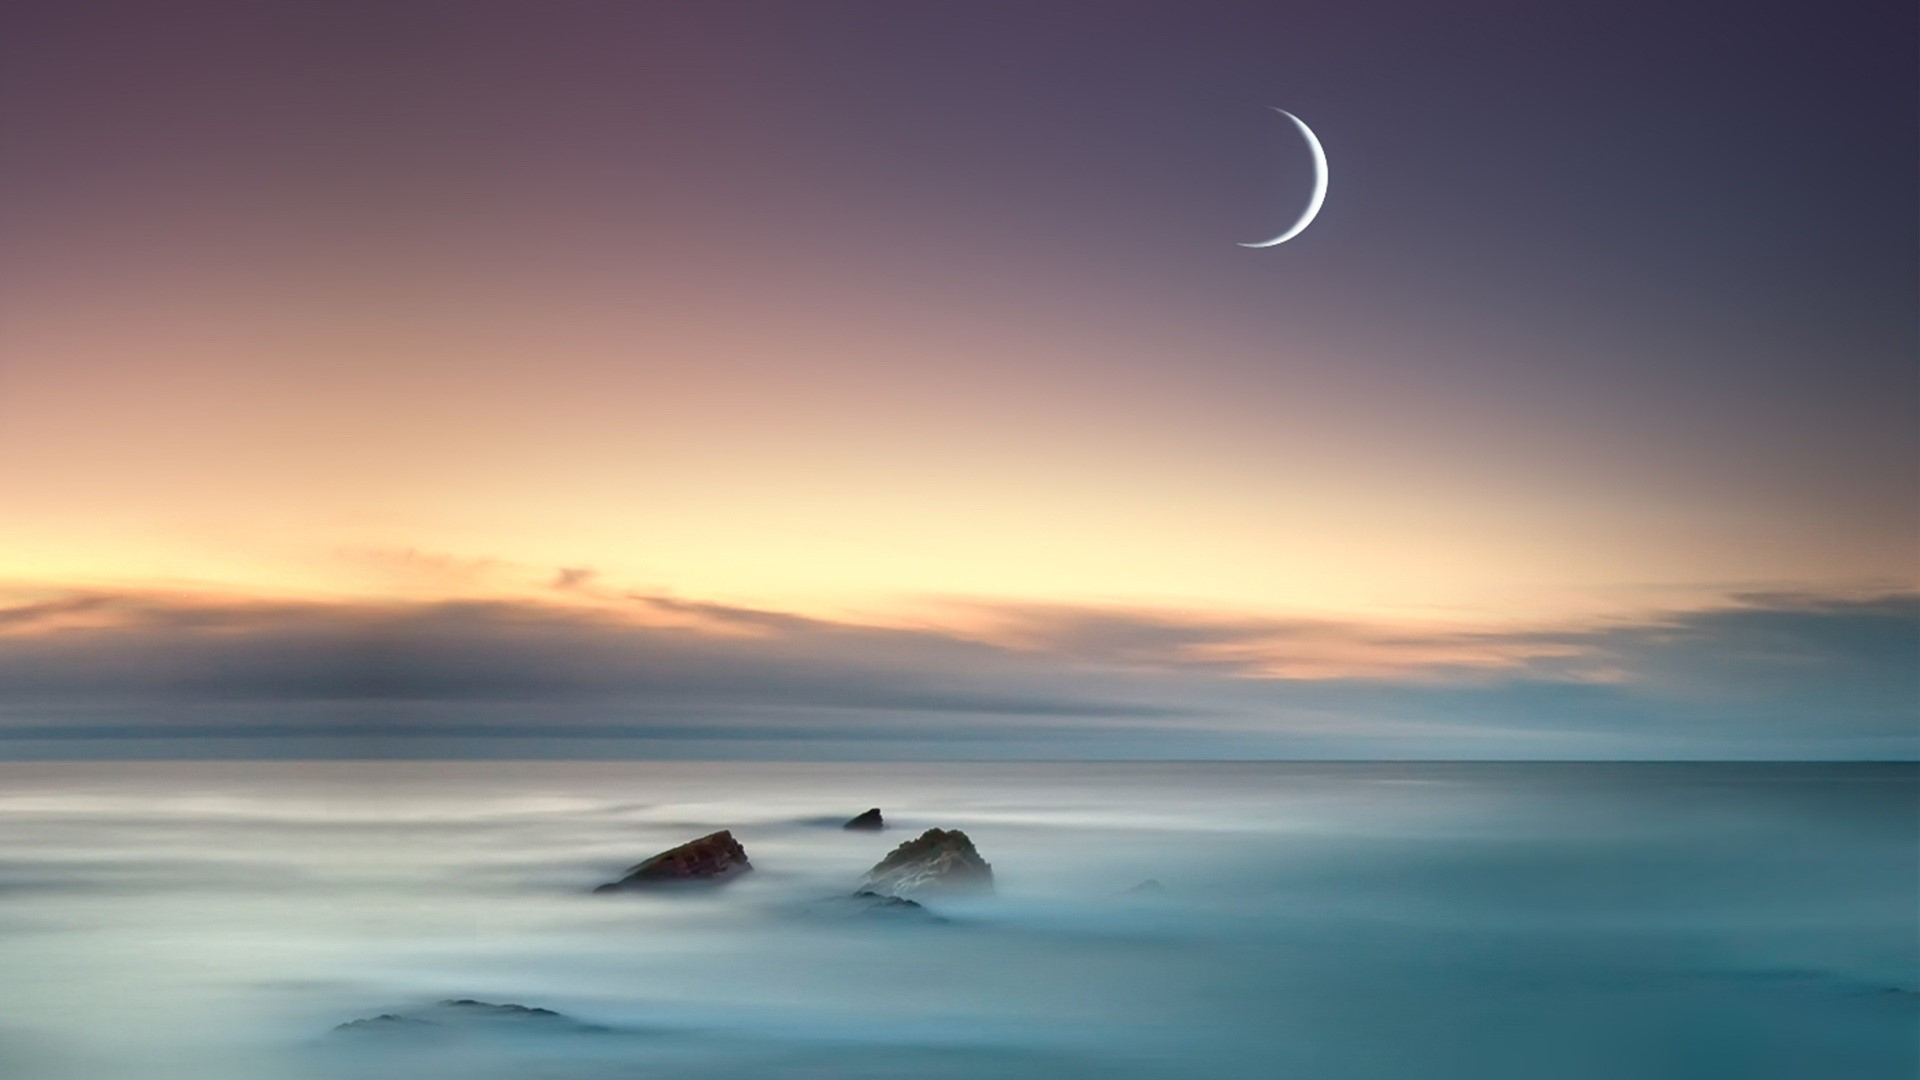 Wallpaper The sea and the moon